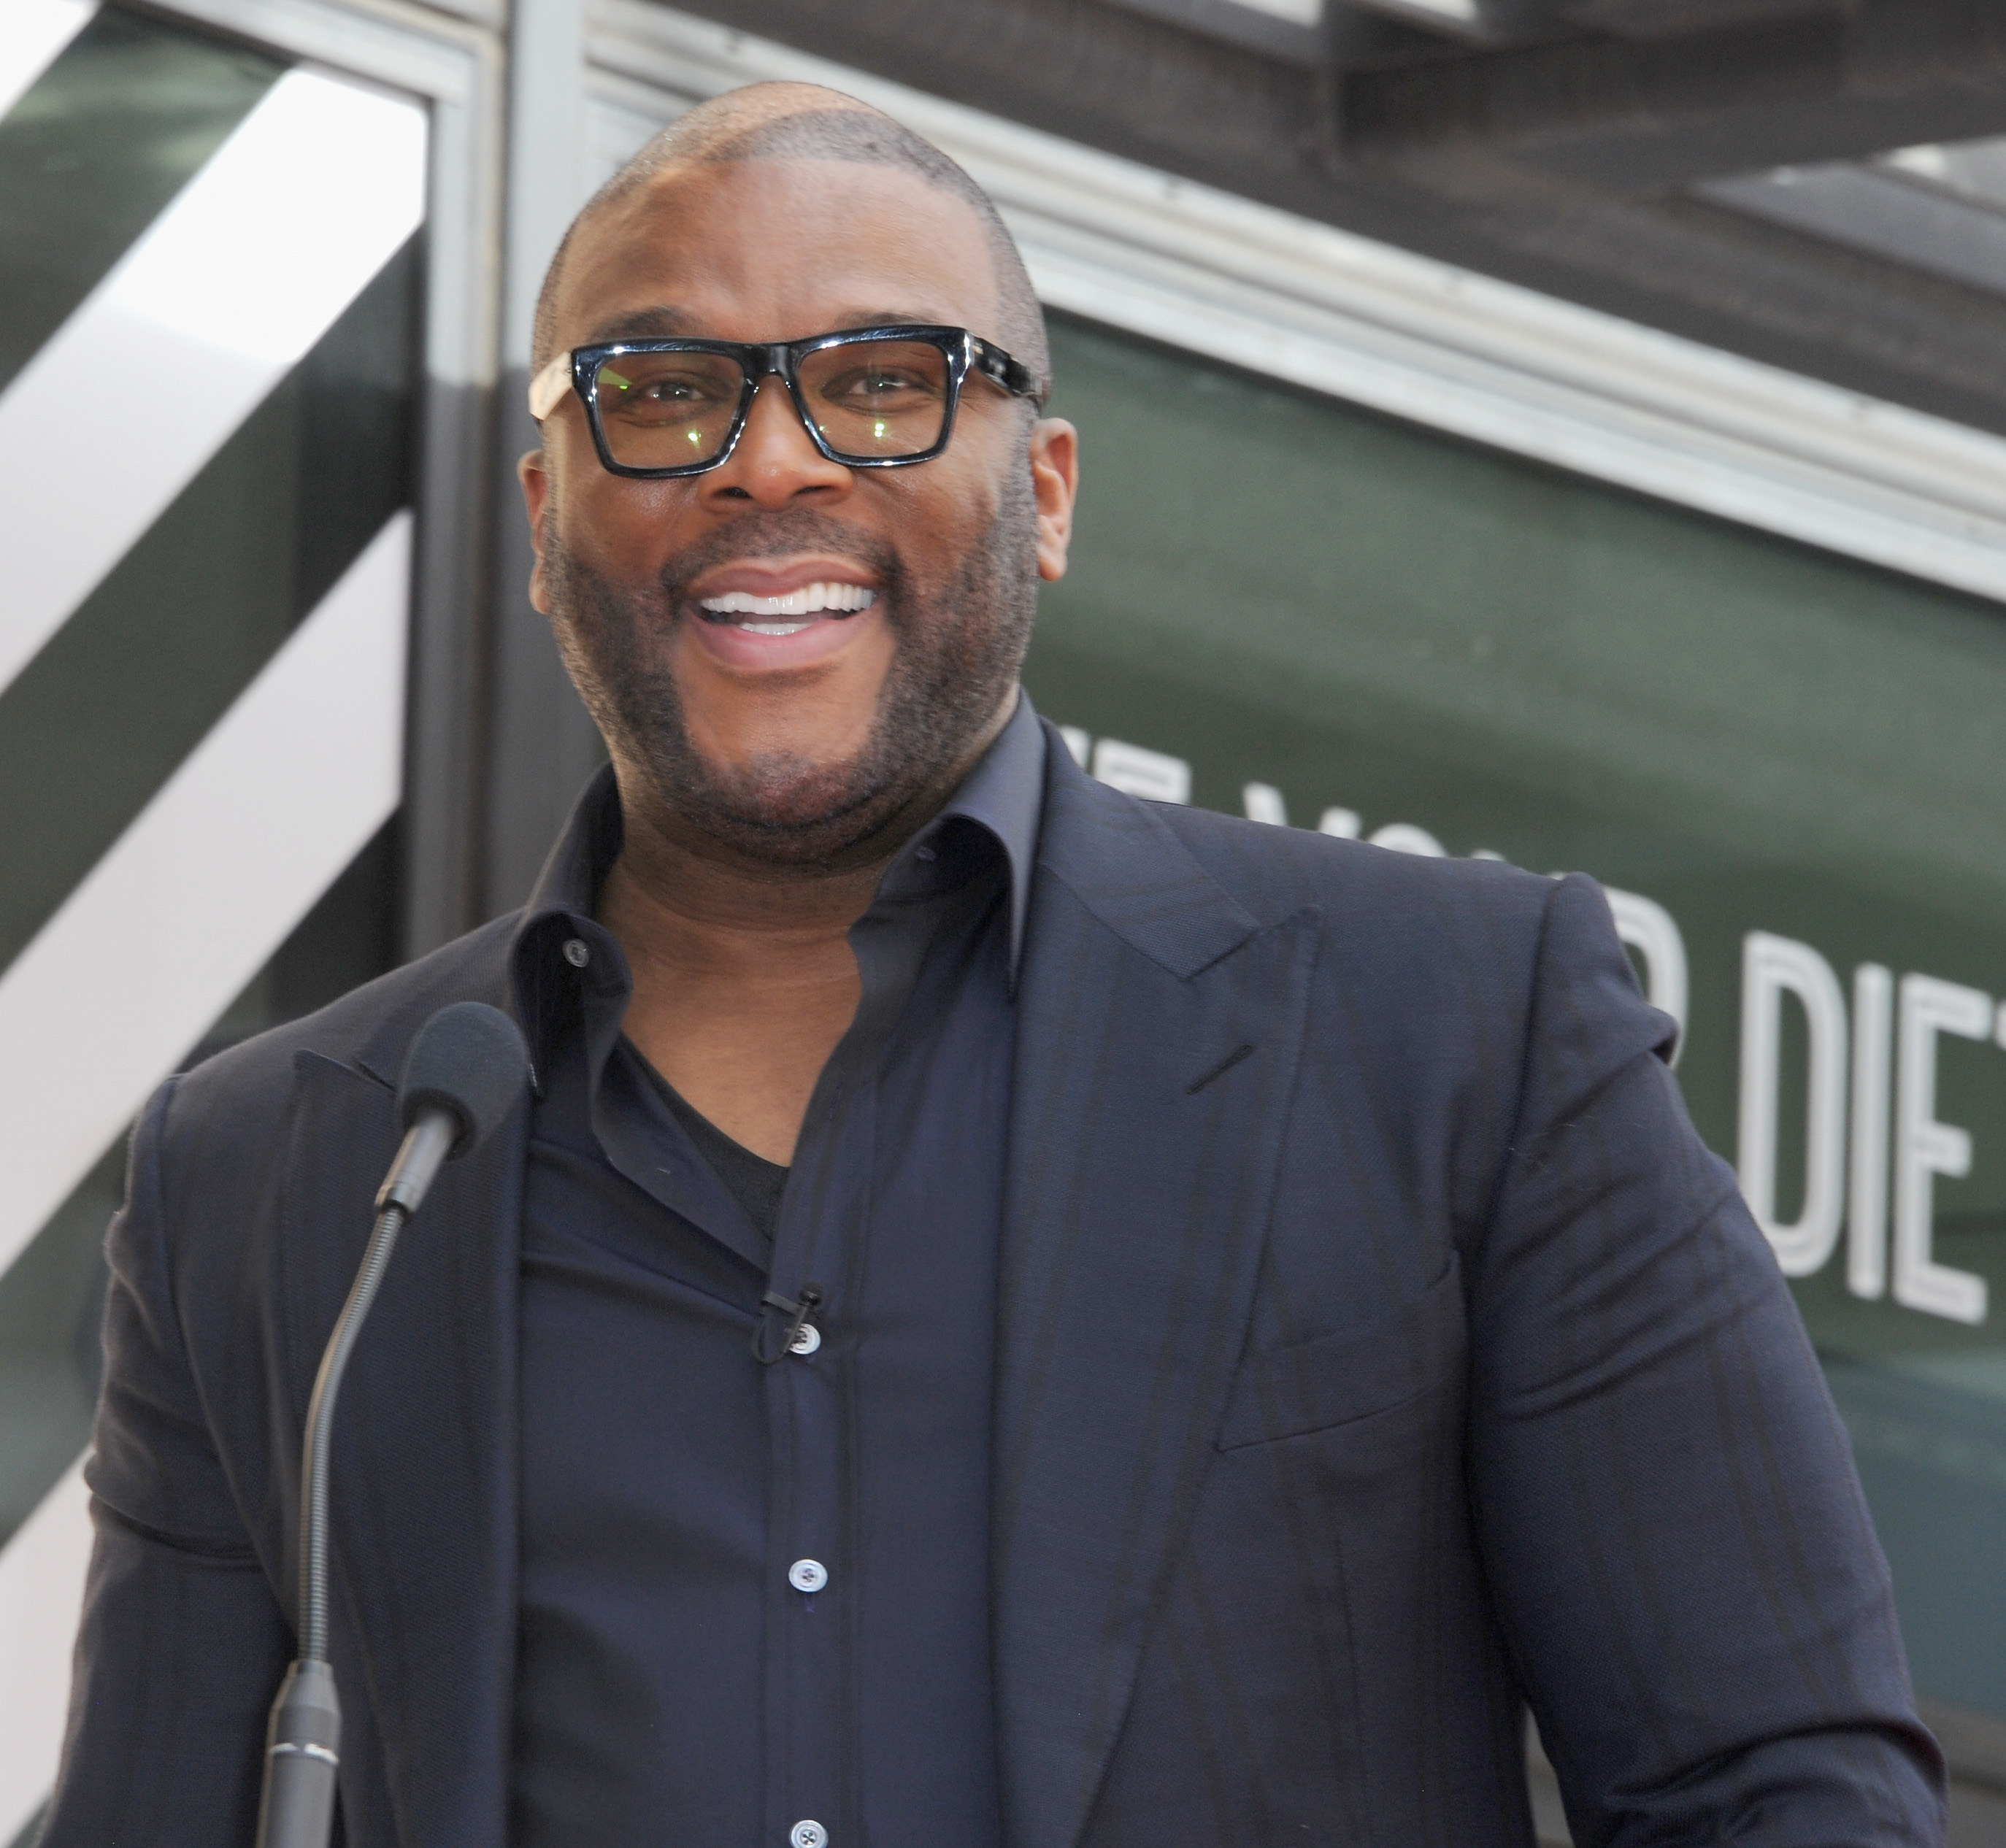 Tyler Perry speaks at the Dr. Phil McGraw Star Ceremony On The Hollywood Walk Of Fame on February 21, 2020 in Hollywood, California